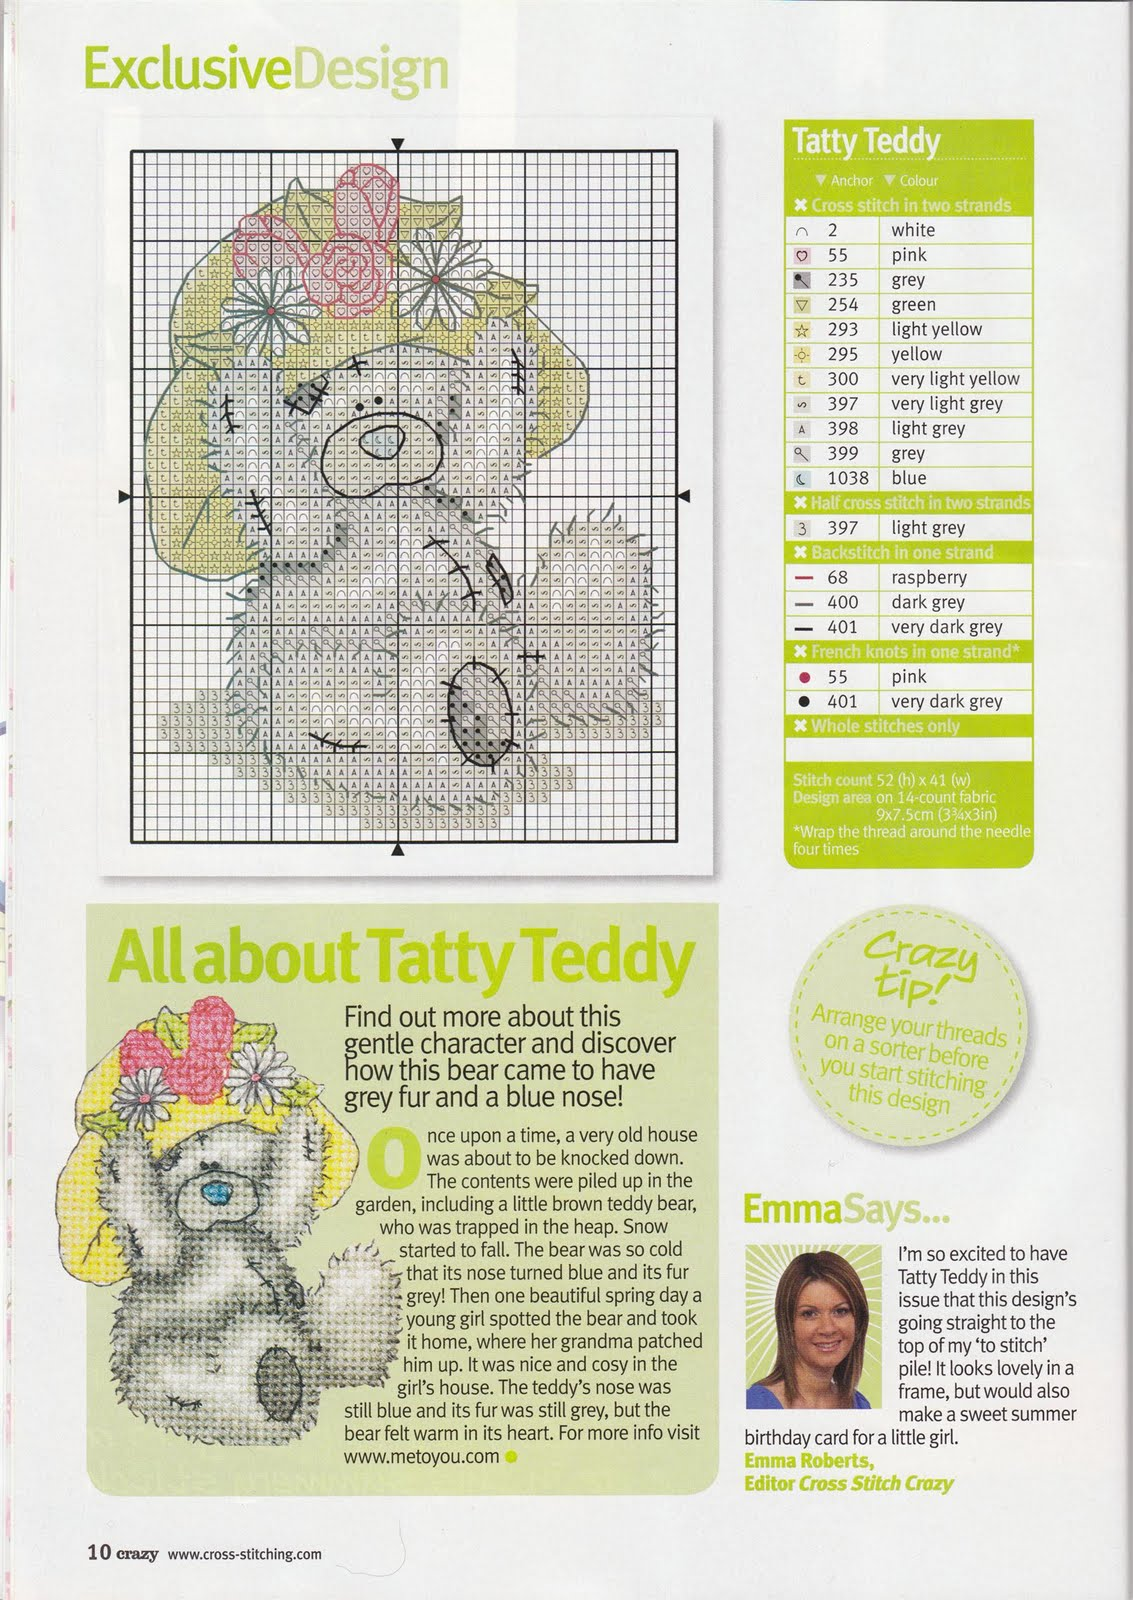 free tatty teddy cross stitch pattern download torrent - Verified